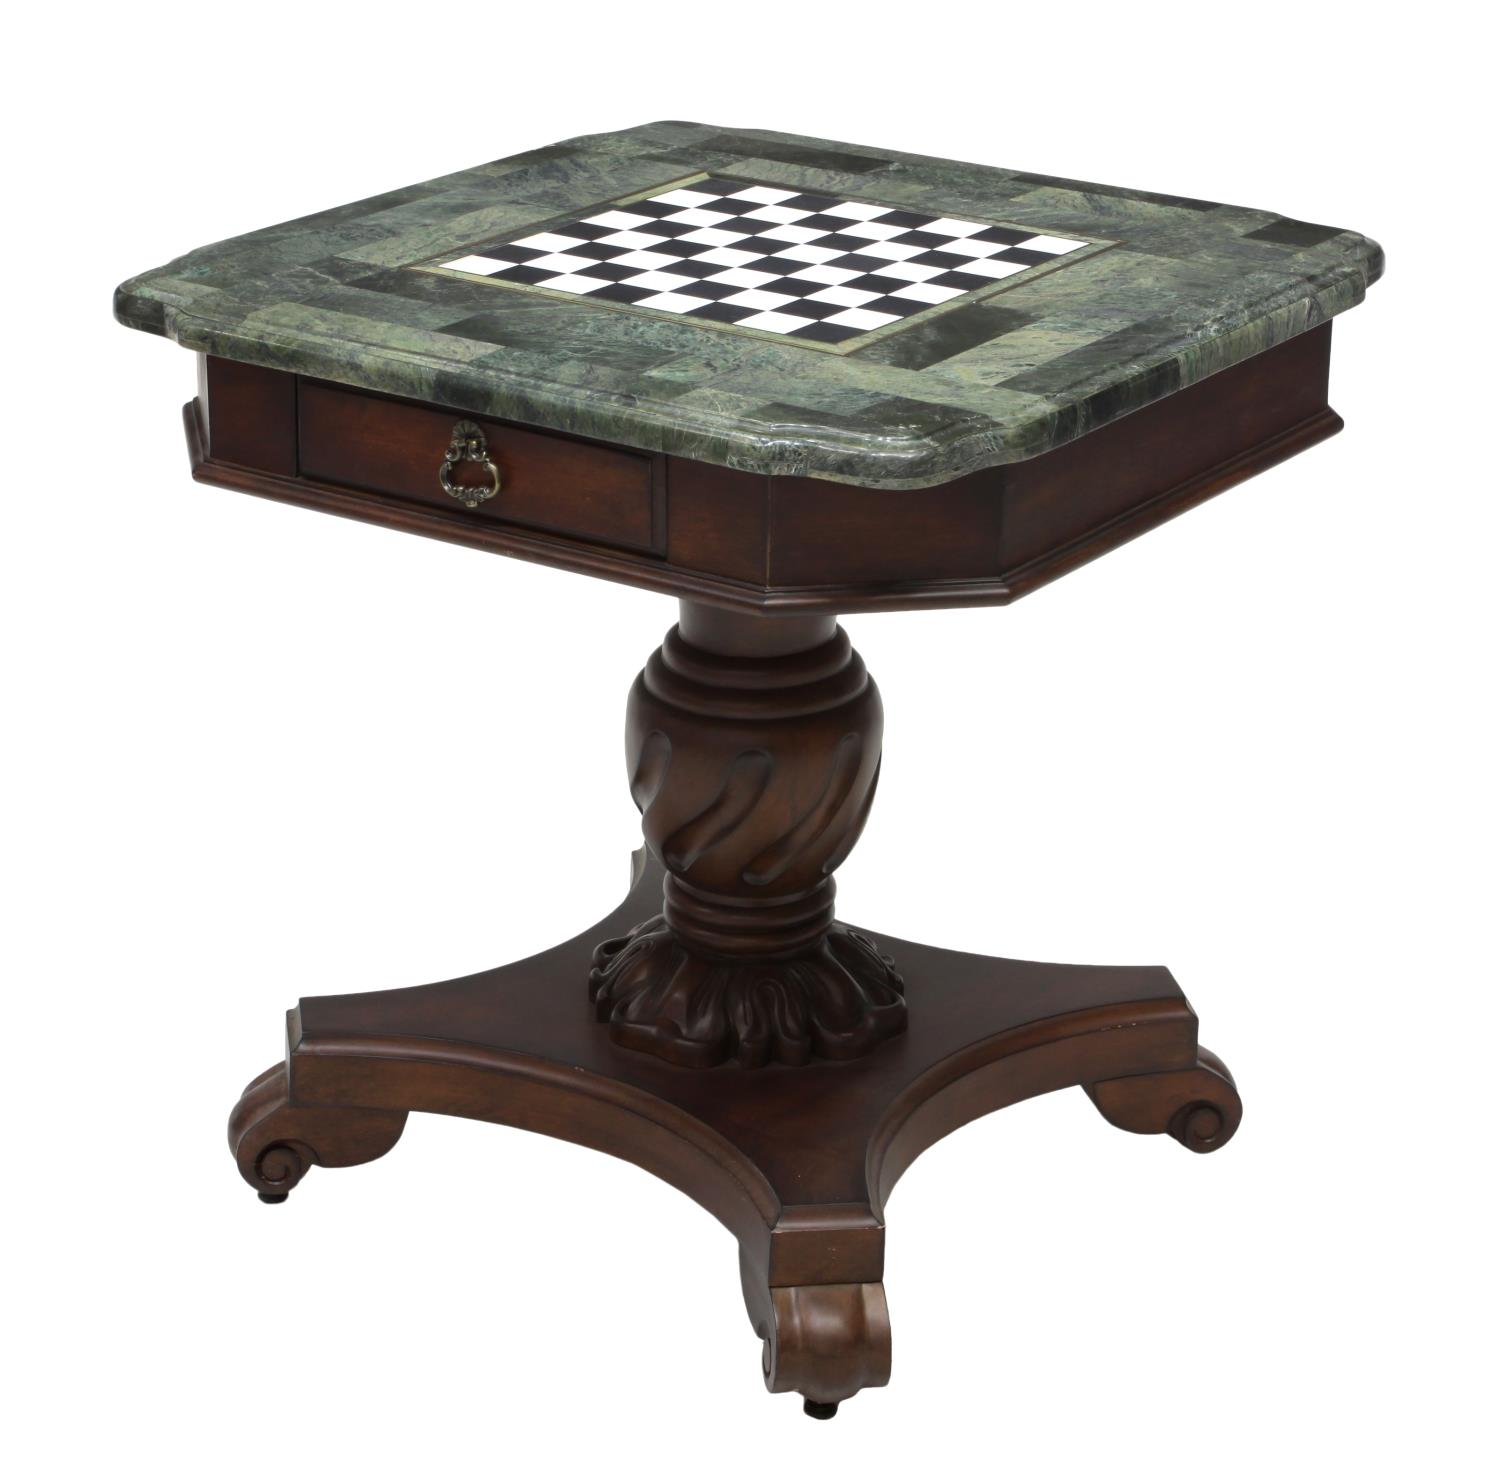 Hooker Furniture Green Marble Top Games Table Jo Anne Christian Collection Part Two Dreyfus